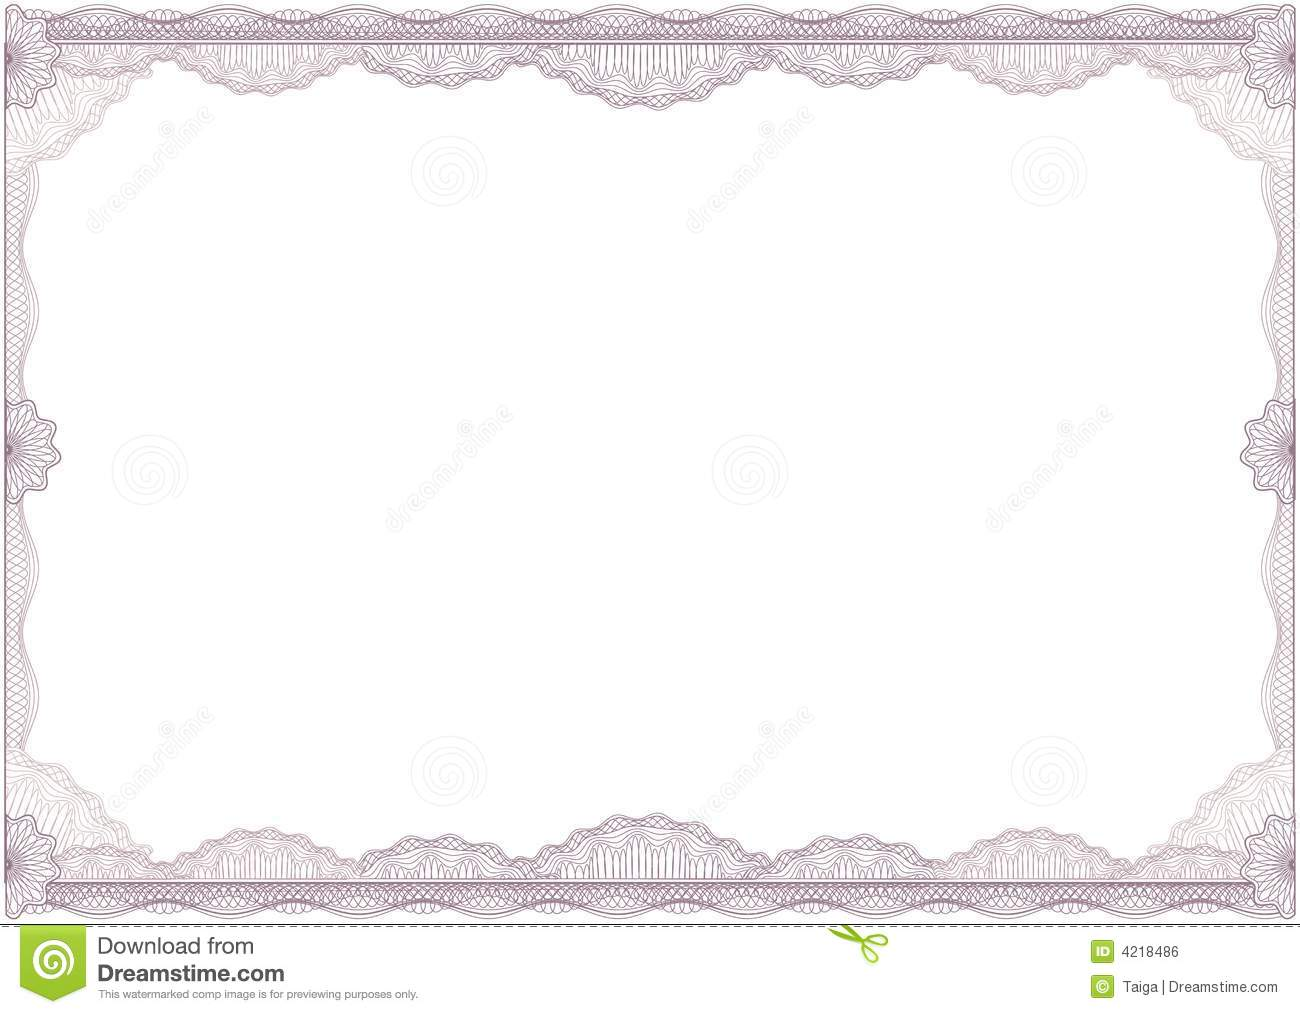 14 borders vector green certificate images free vector certificate border green certificate for Certificate border vector